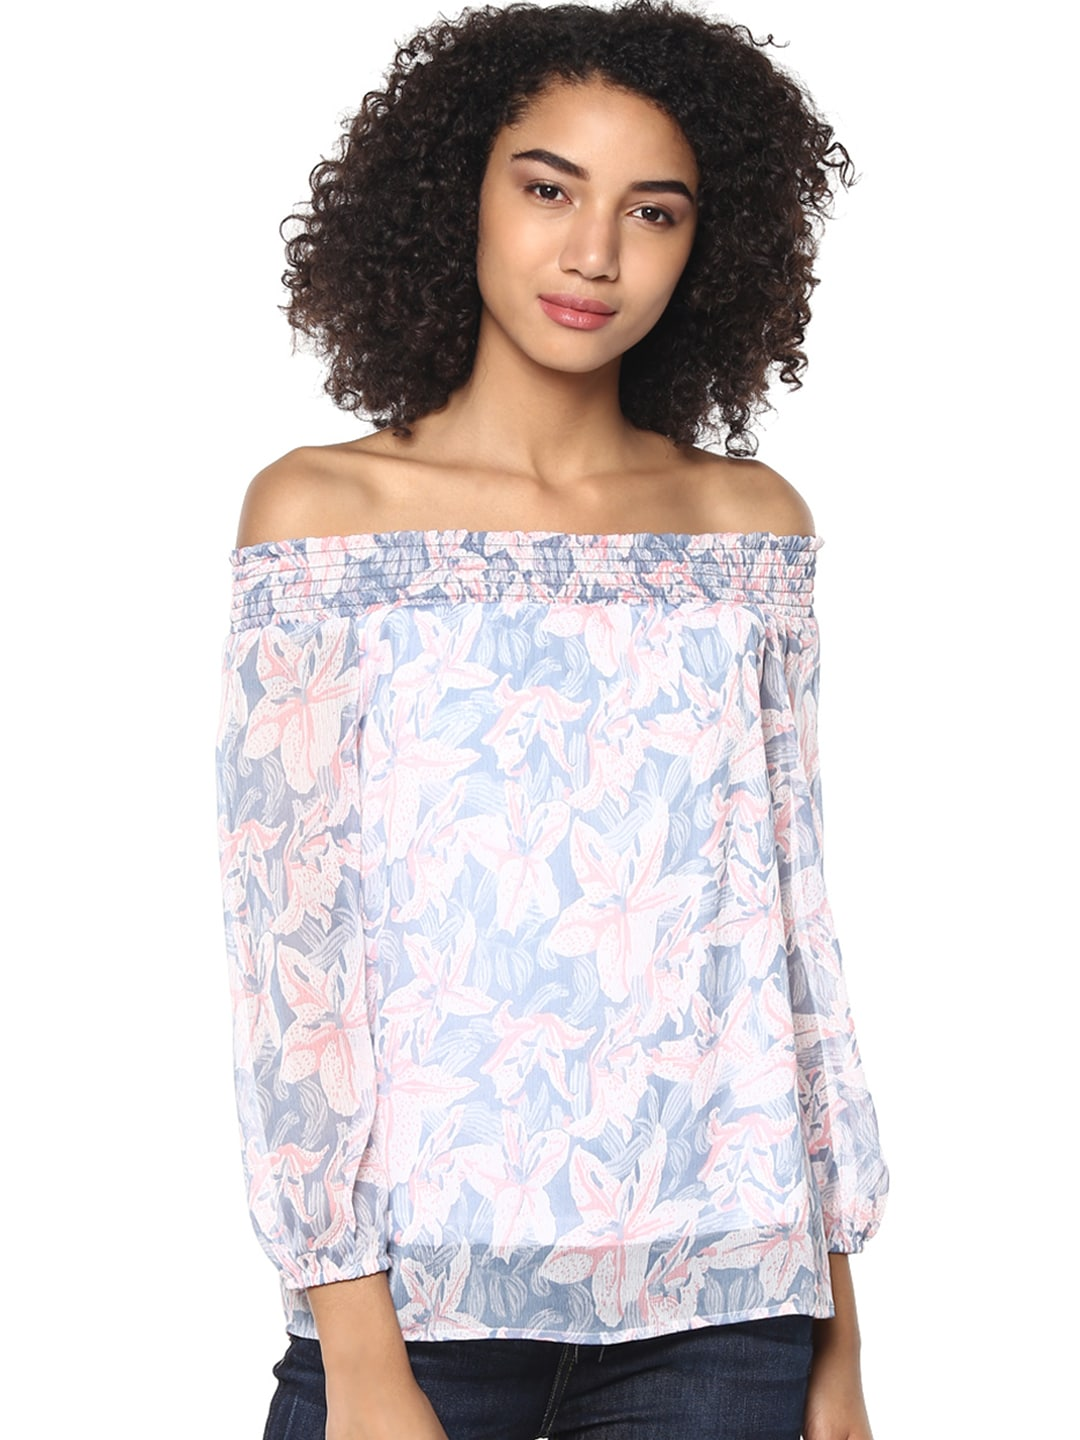 00107753a105c3 Ladies Tops - Buy Tops   T-shirts for Women Online